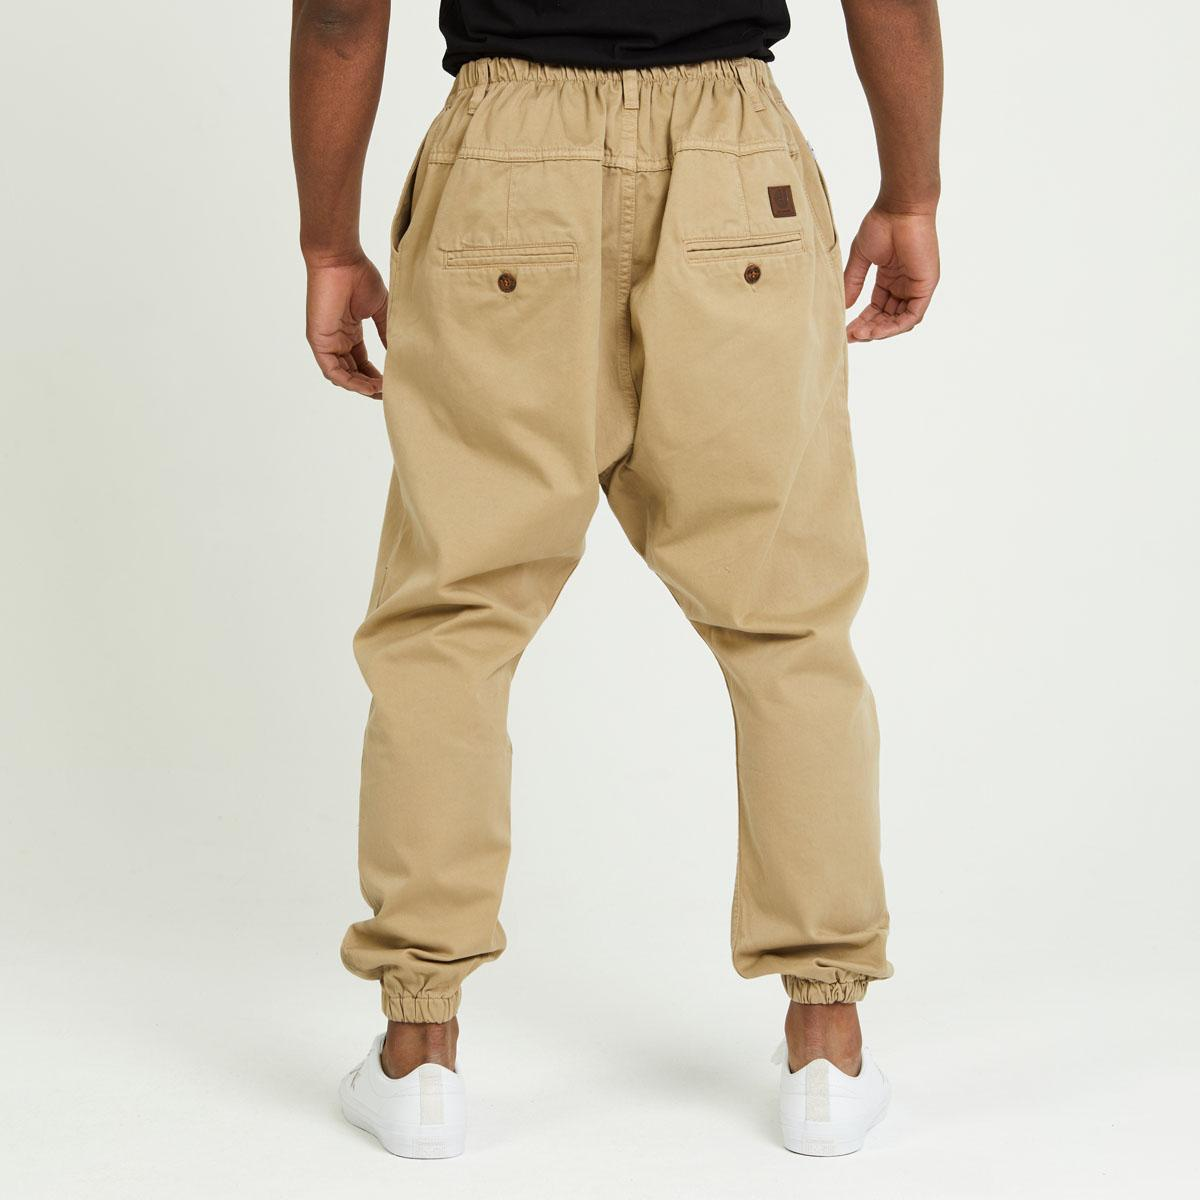 752dd40ca8d7b Beige usual fit city pants - DCJeans ® - sarouel & clothing - site ...